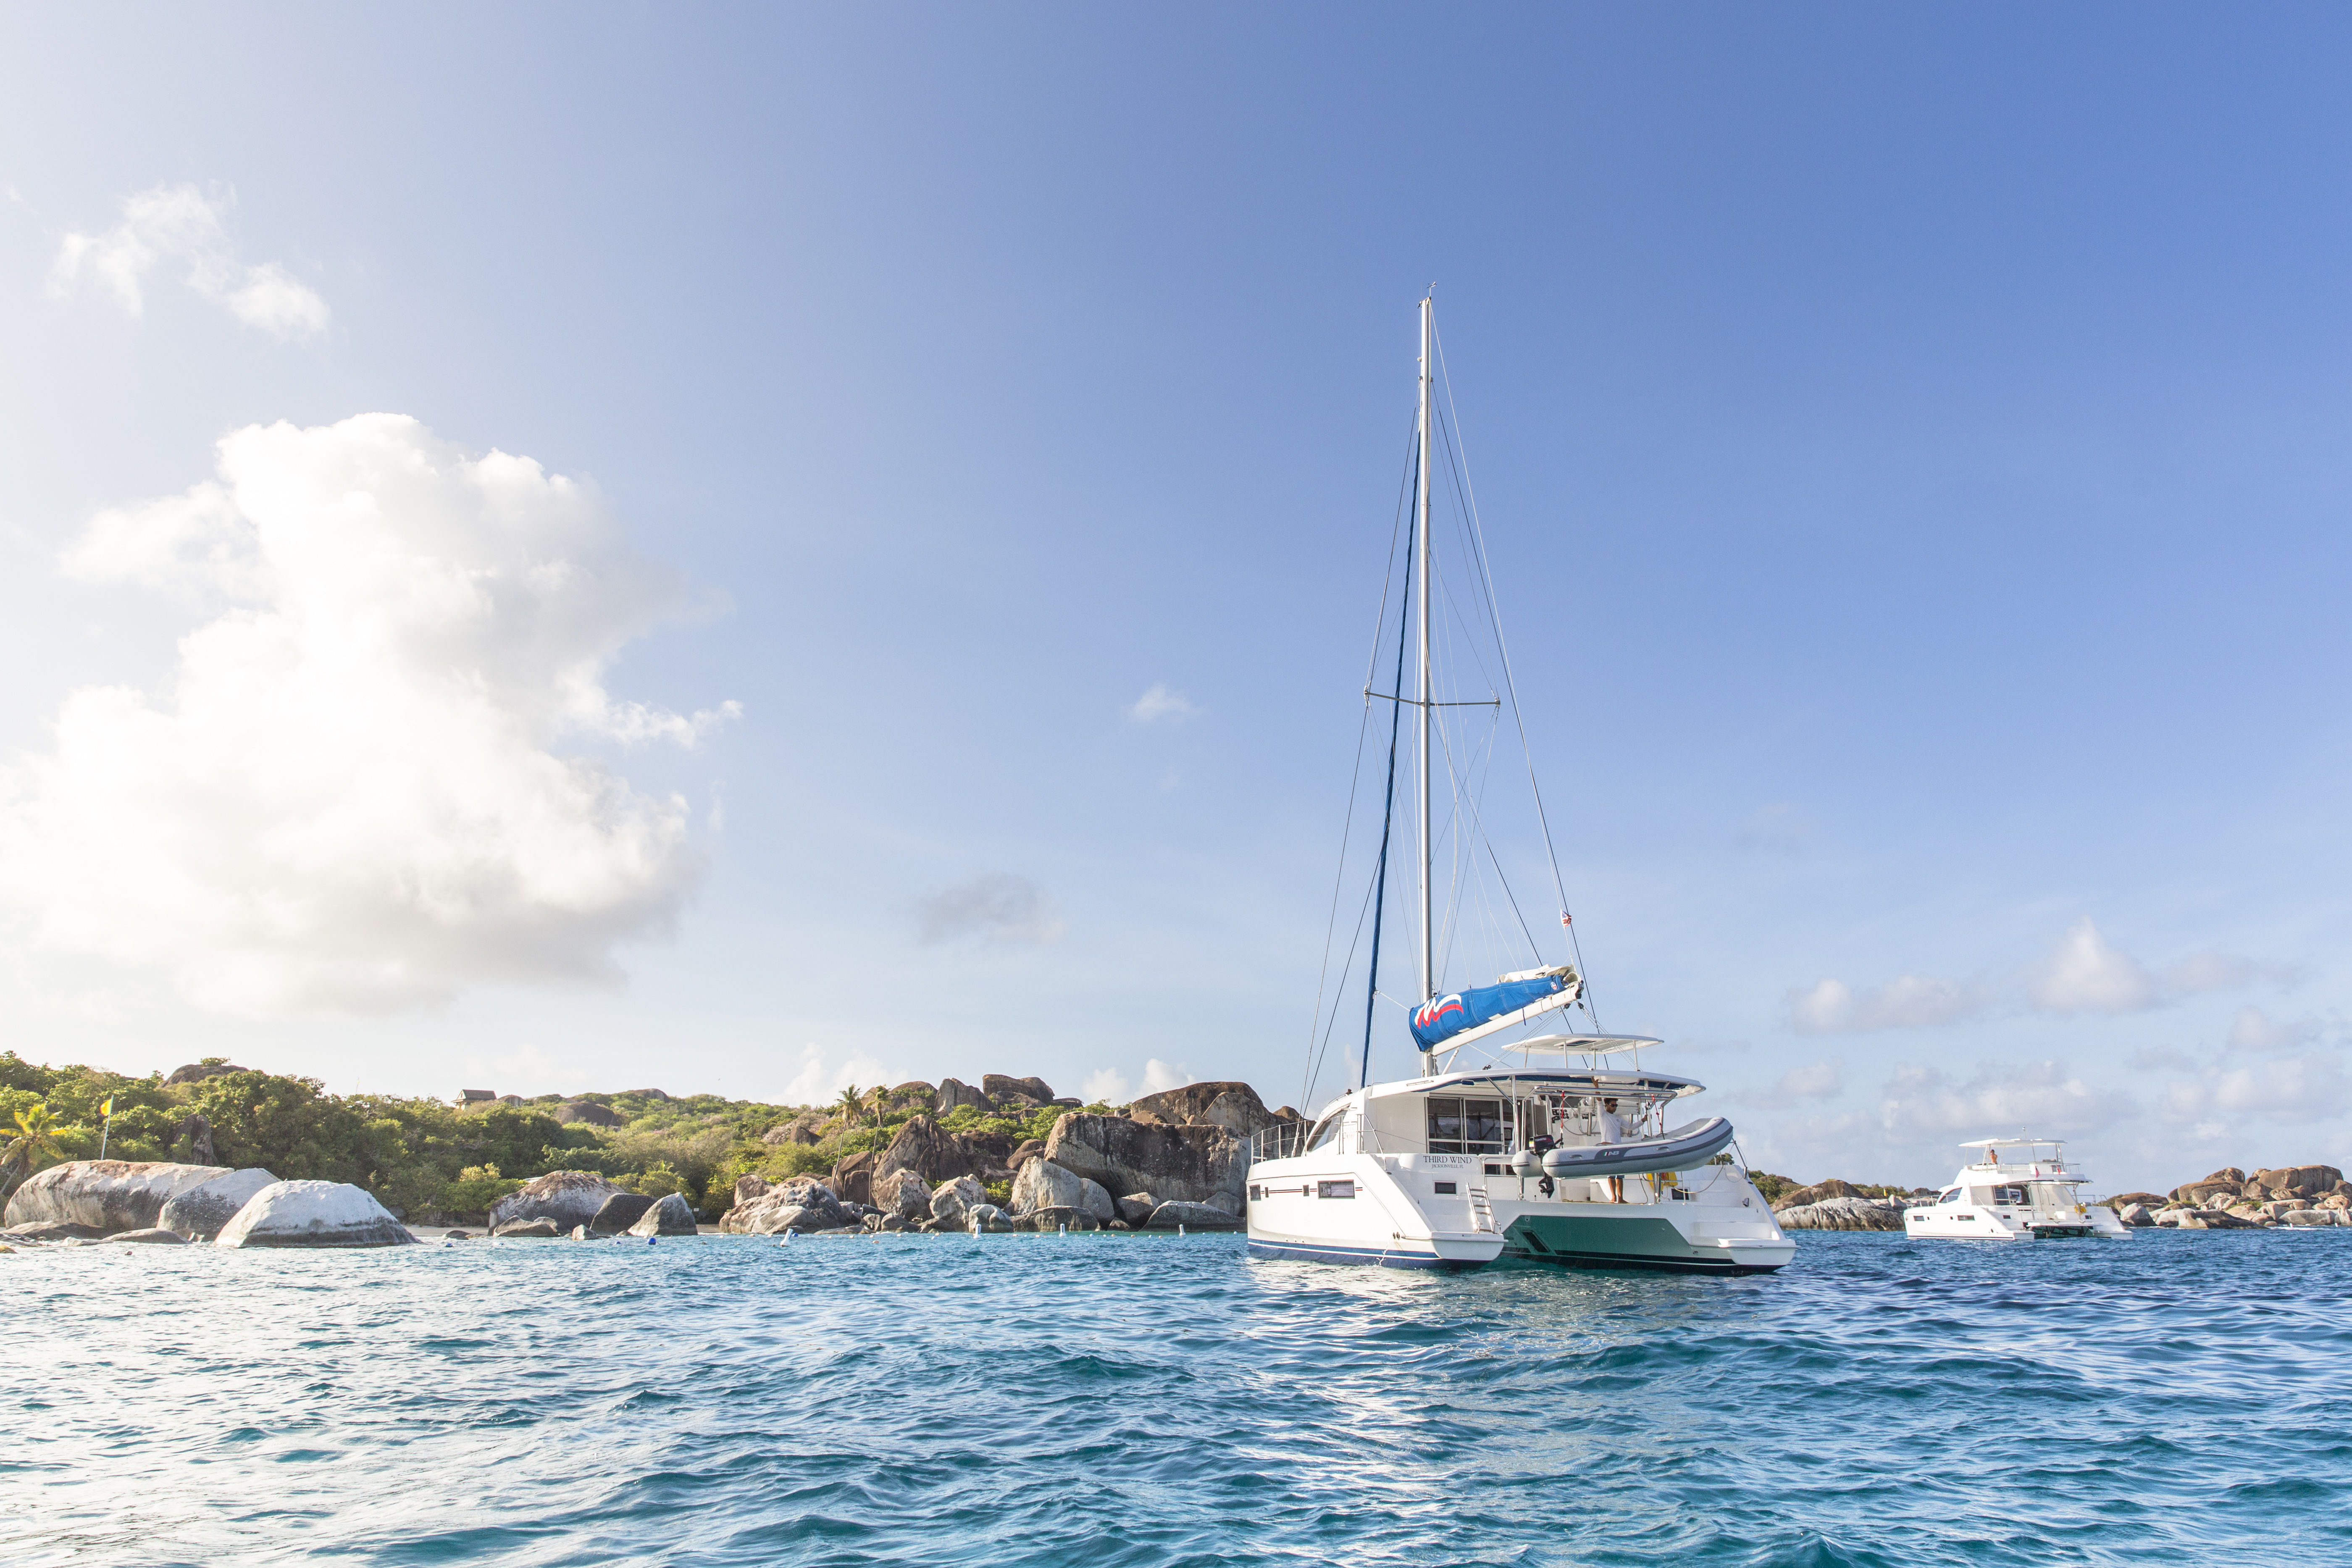 Yacht charter has mast appeal